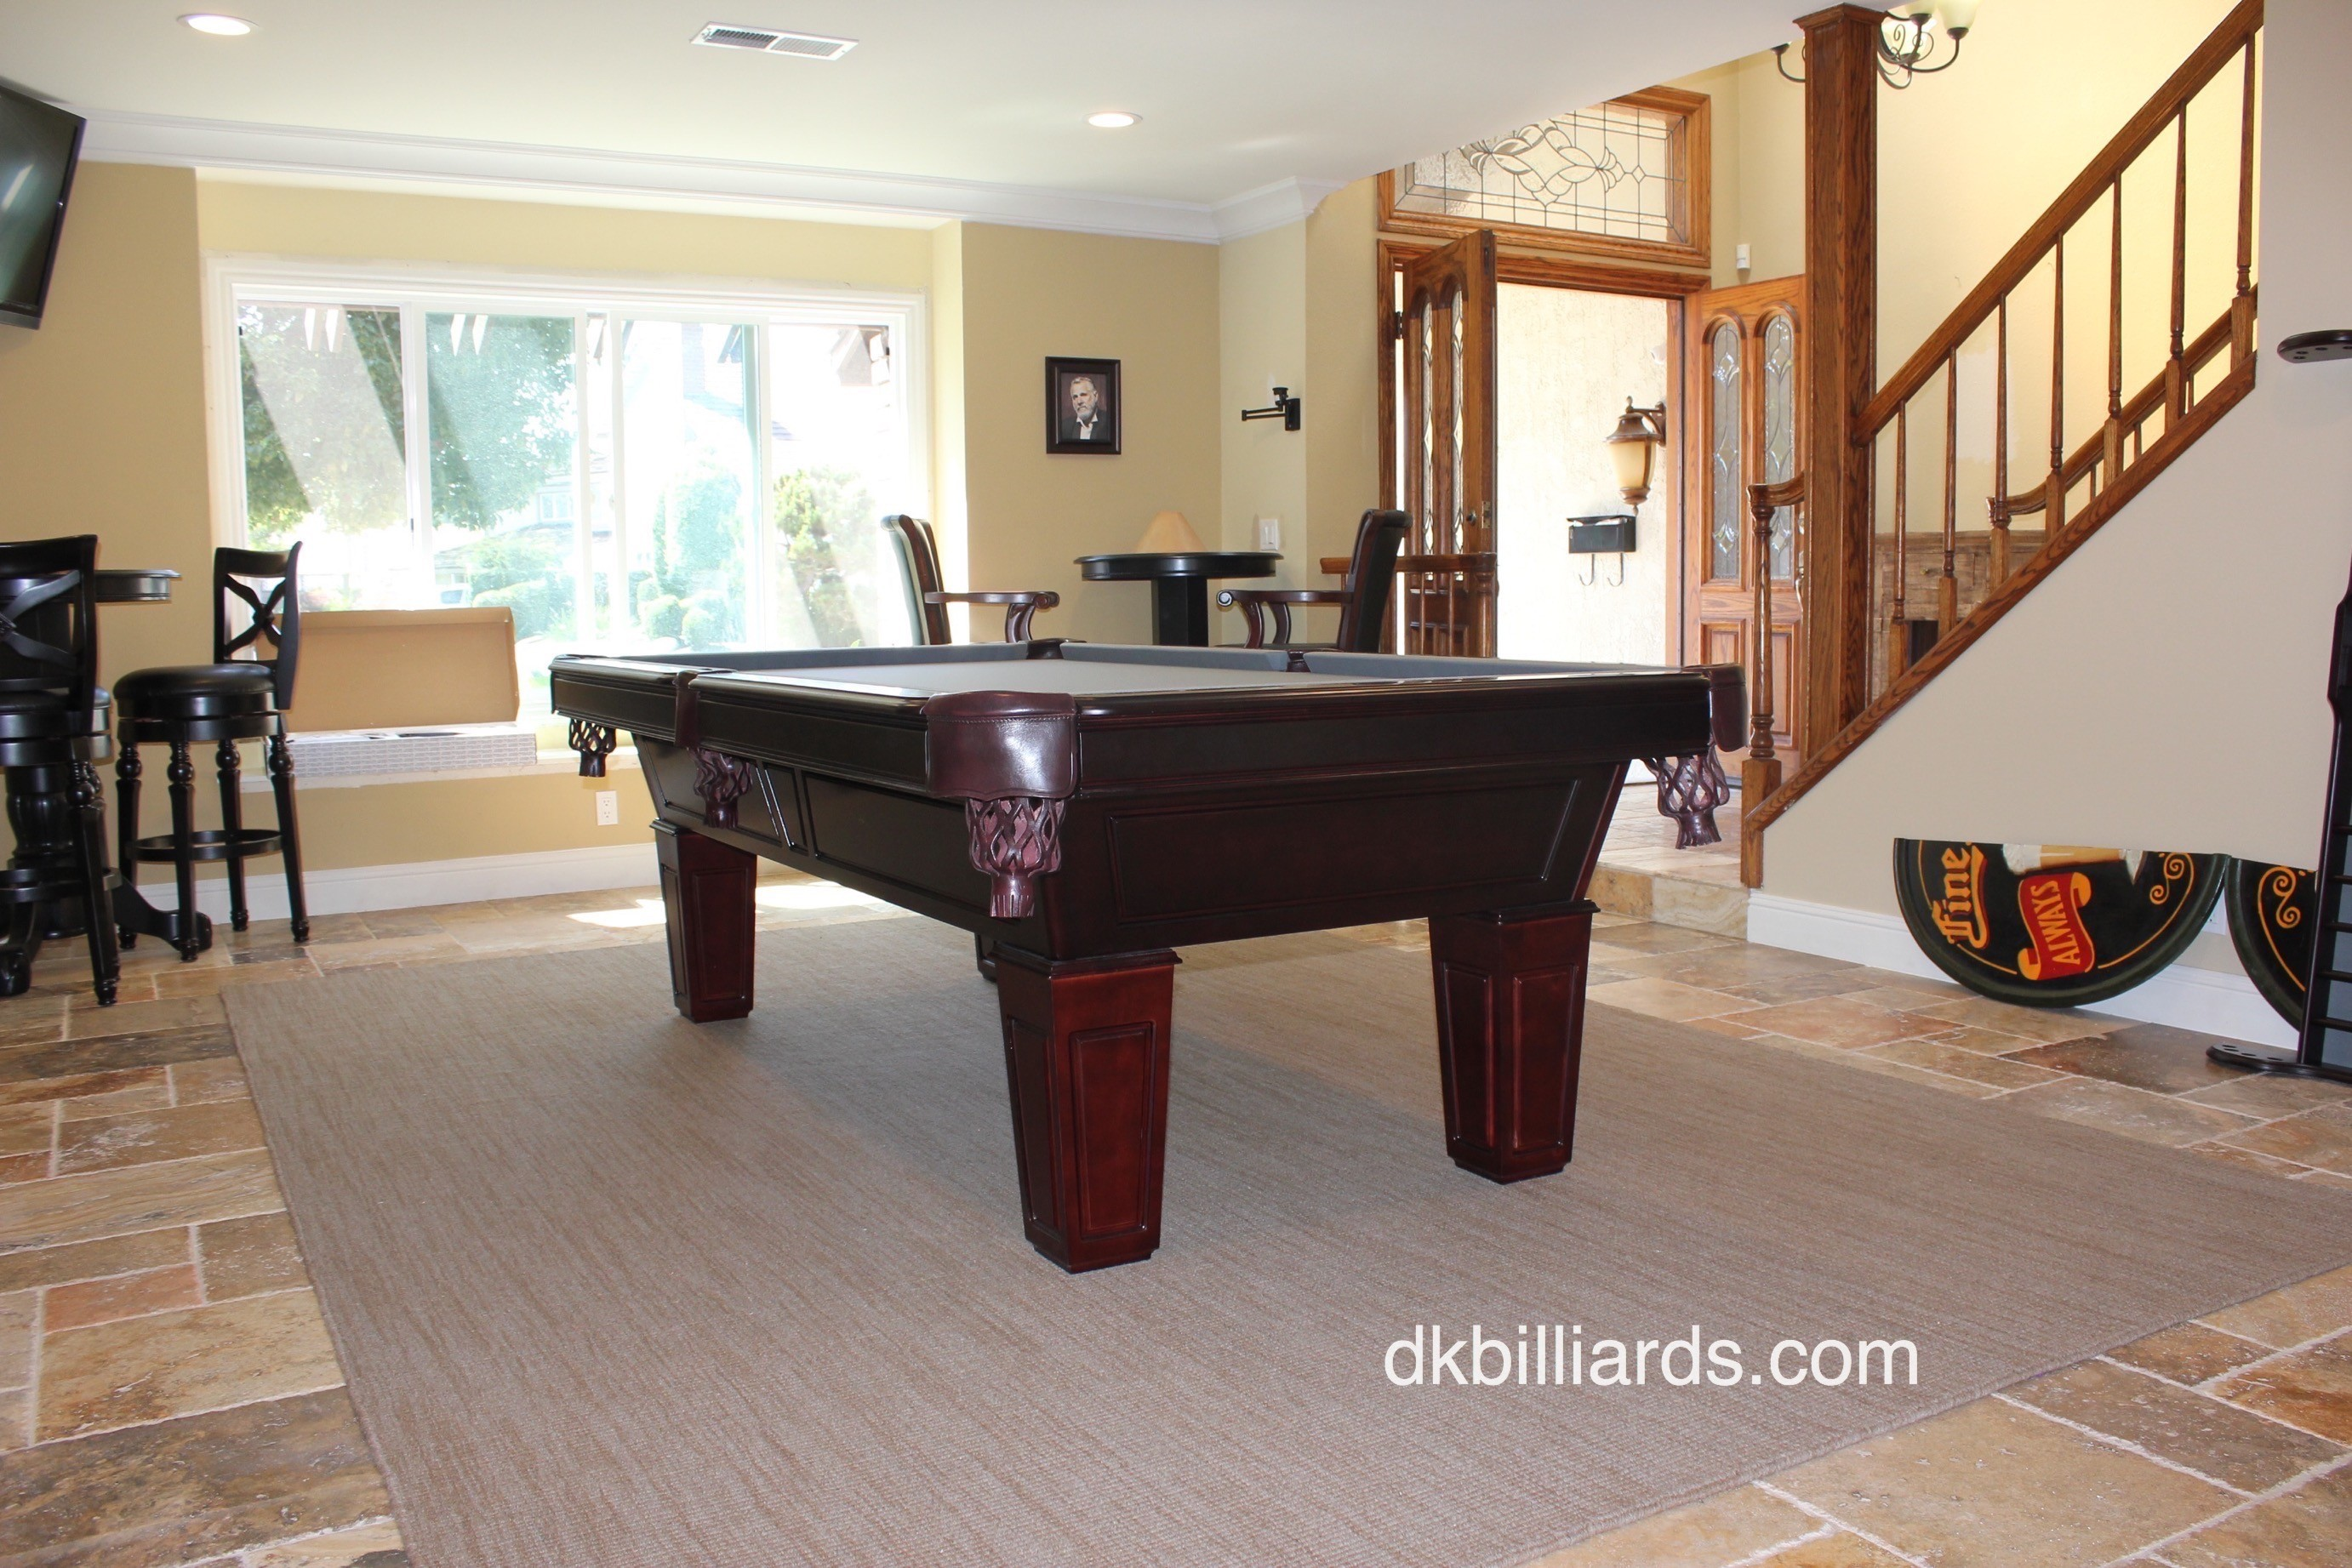 Placing A Pool Table On Rug Dk